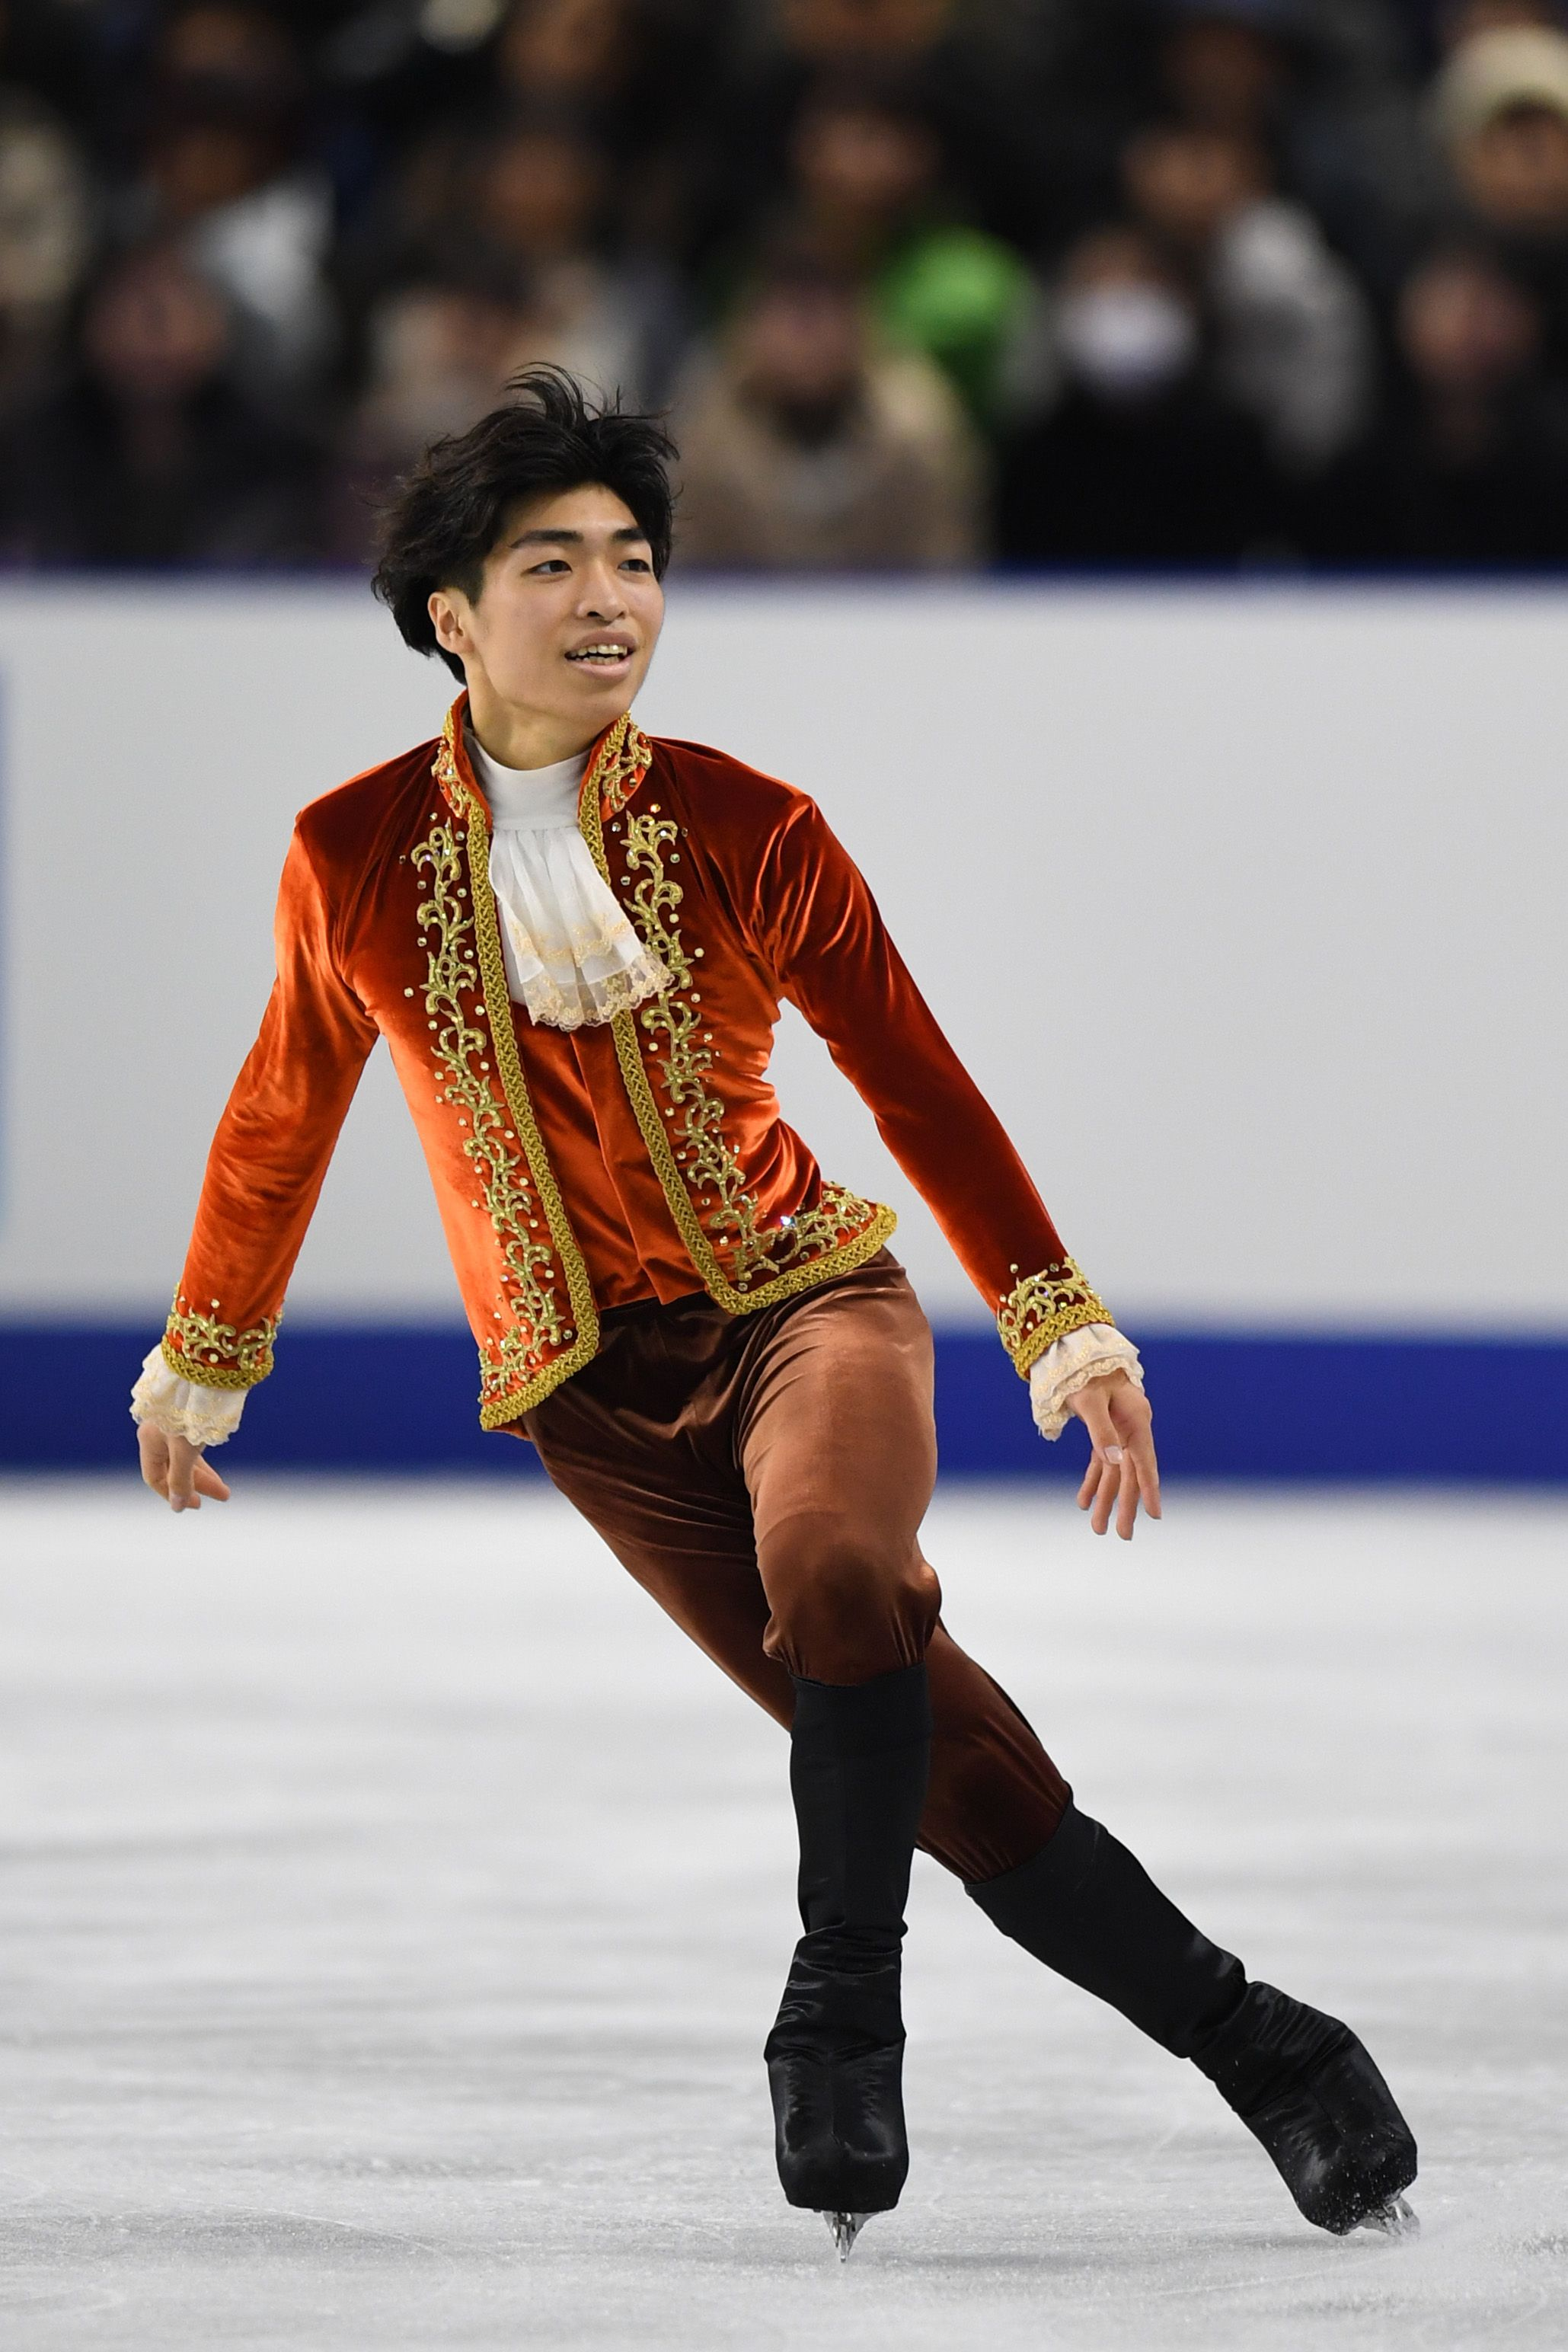 male figure skaters mens ice skating costumes